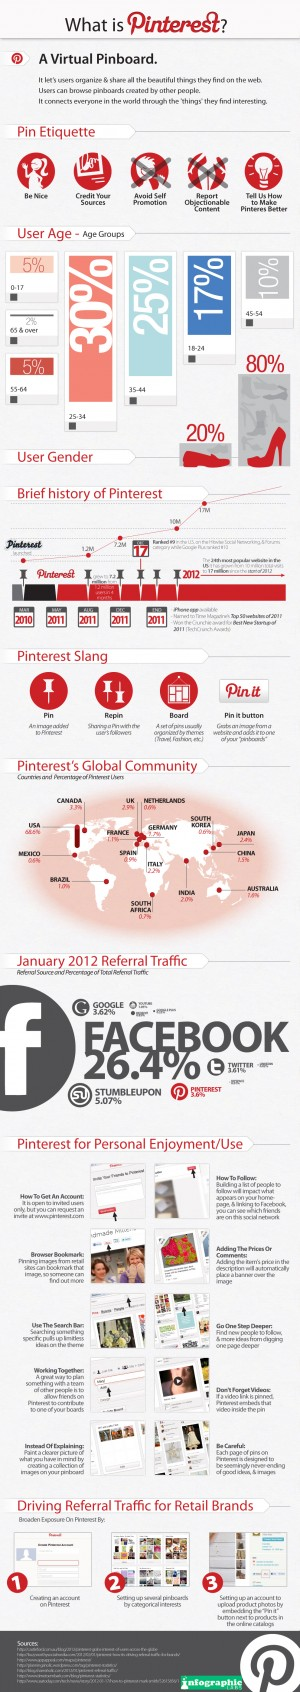 Overview of Pinterest